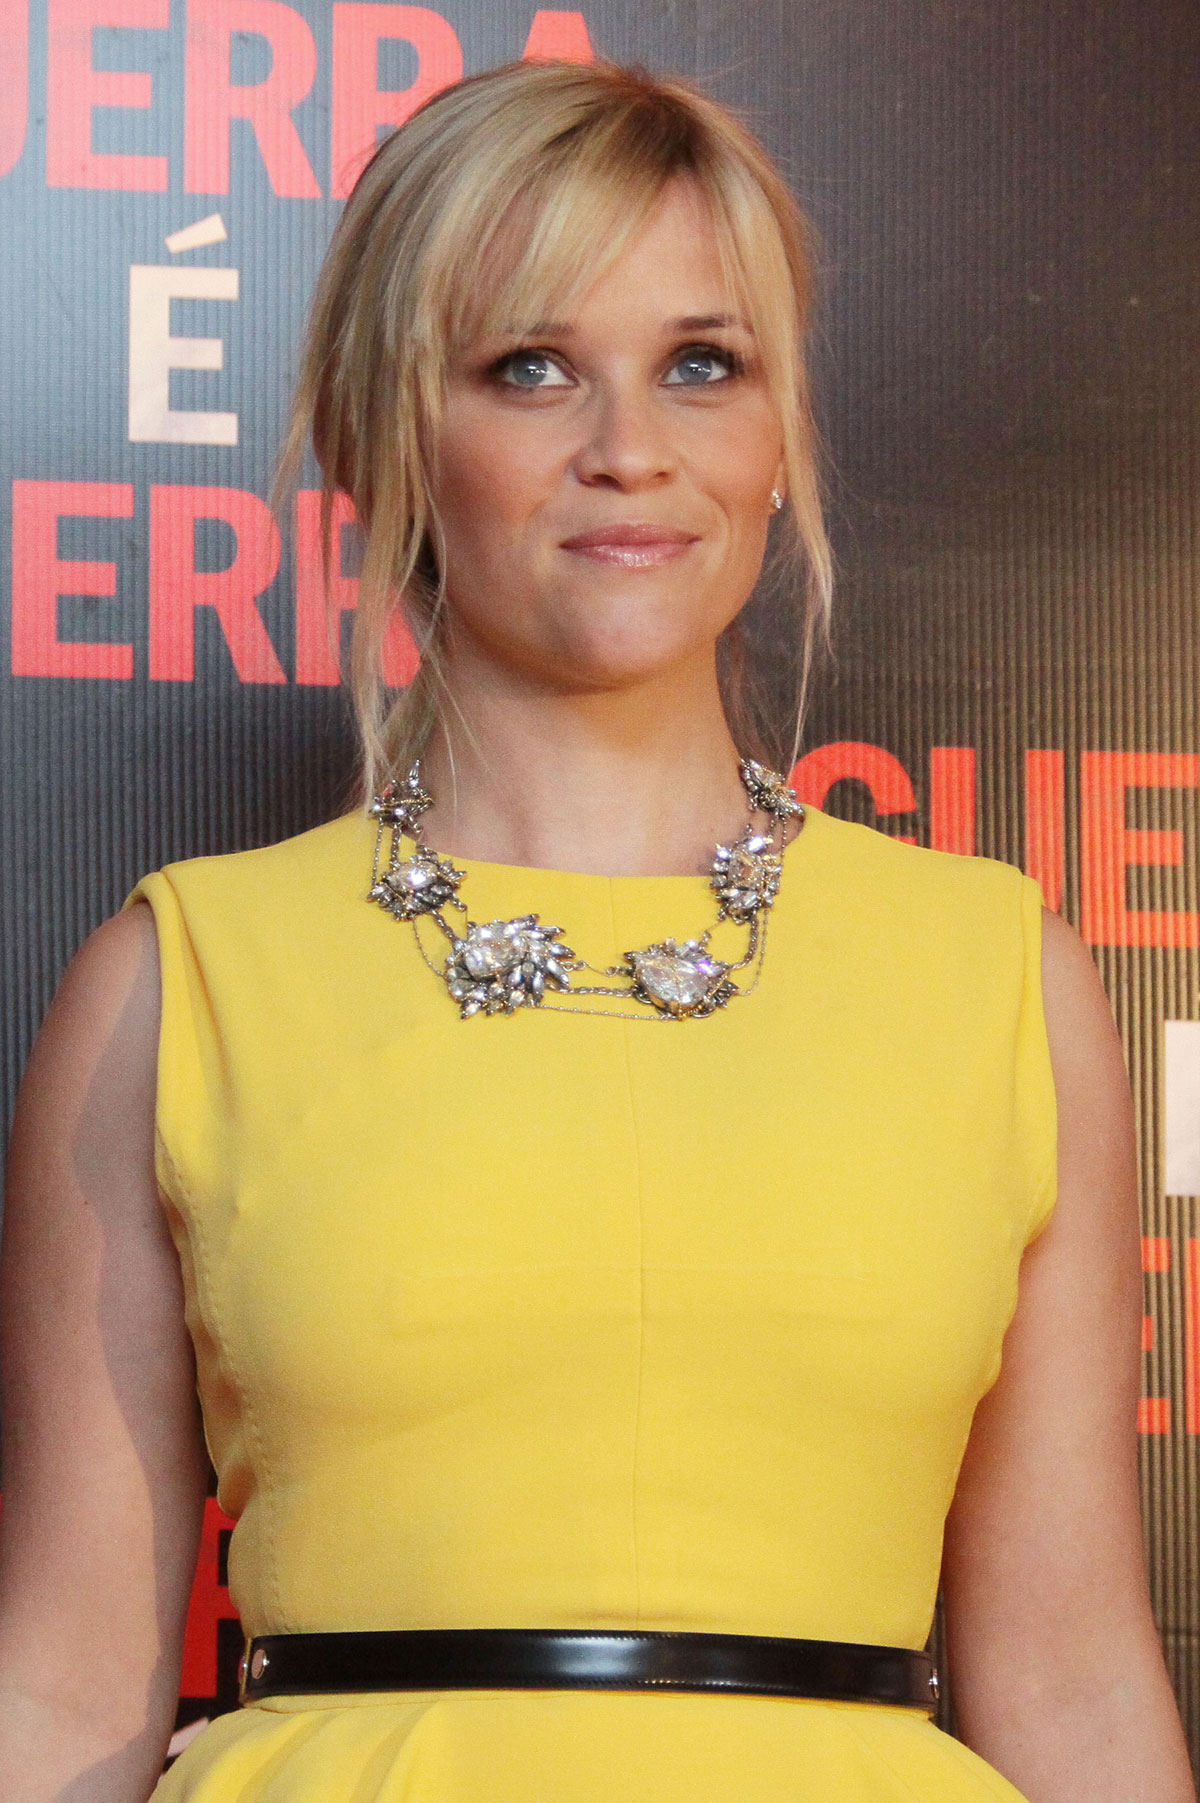 Reese Witherspoon Archives - Page 61 of 62 - HawtCelebs - HawtCelebs Reese Witherspoon